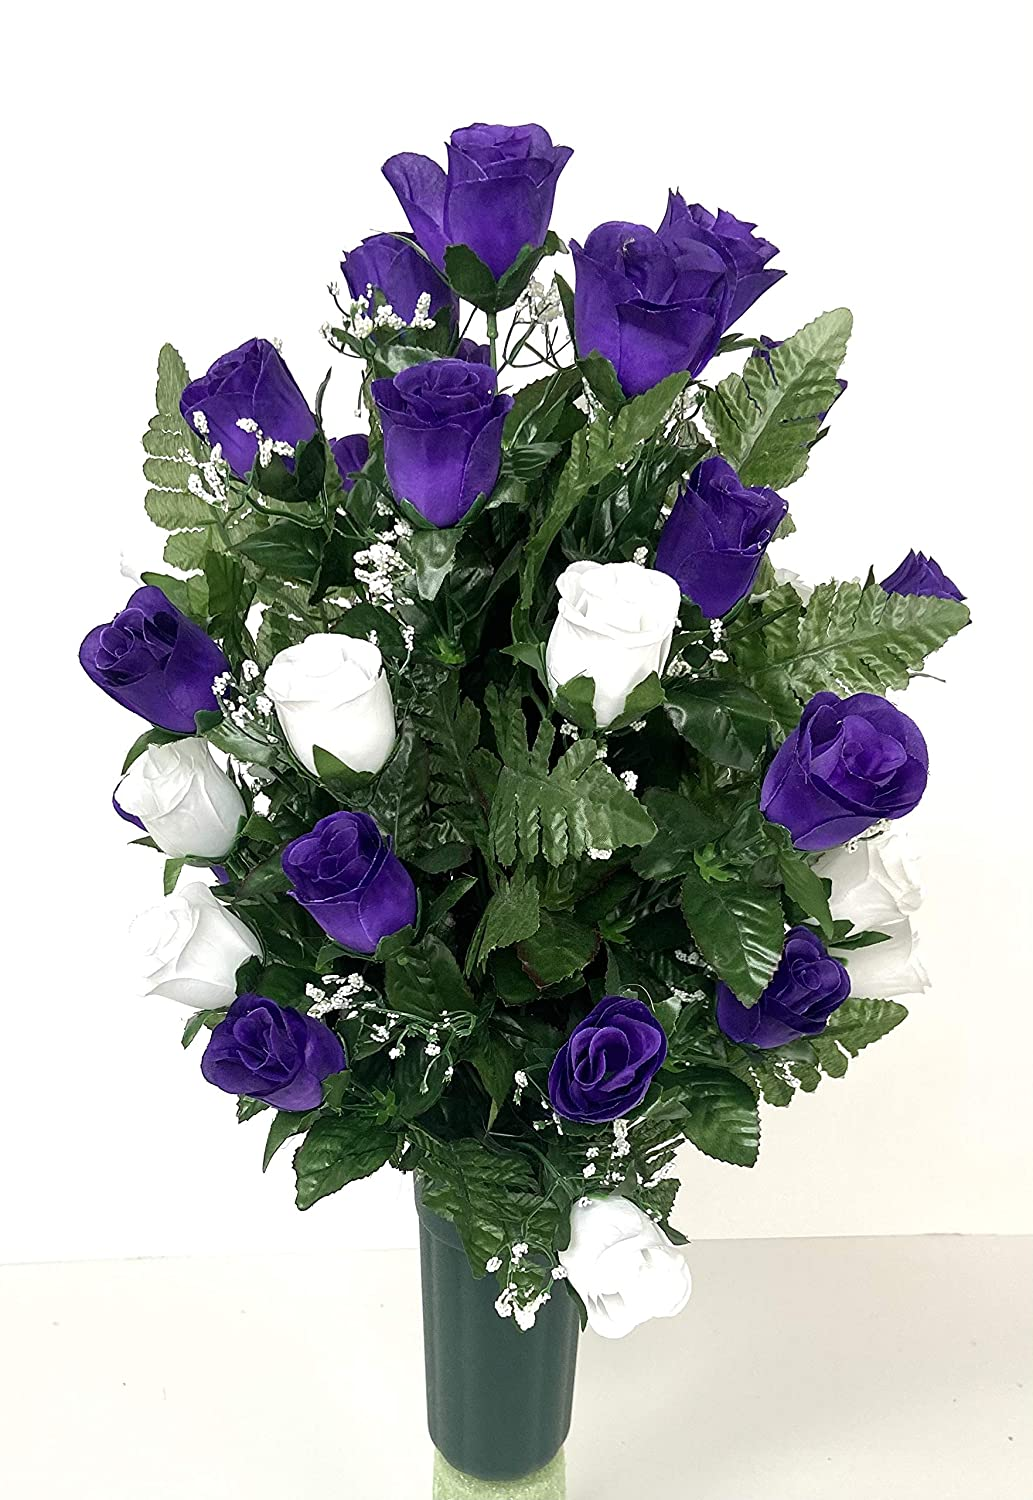 Purple and White Rose Cemetery Sale SALE% OFF Regular dealer With Green Filler Vase Cone